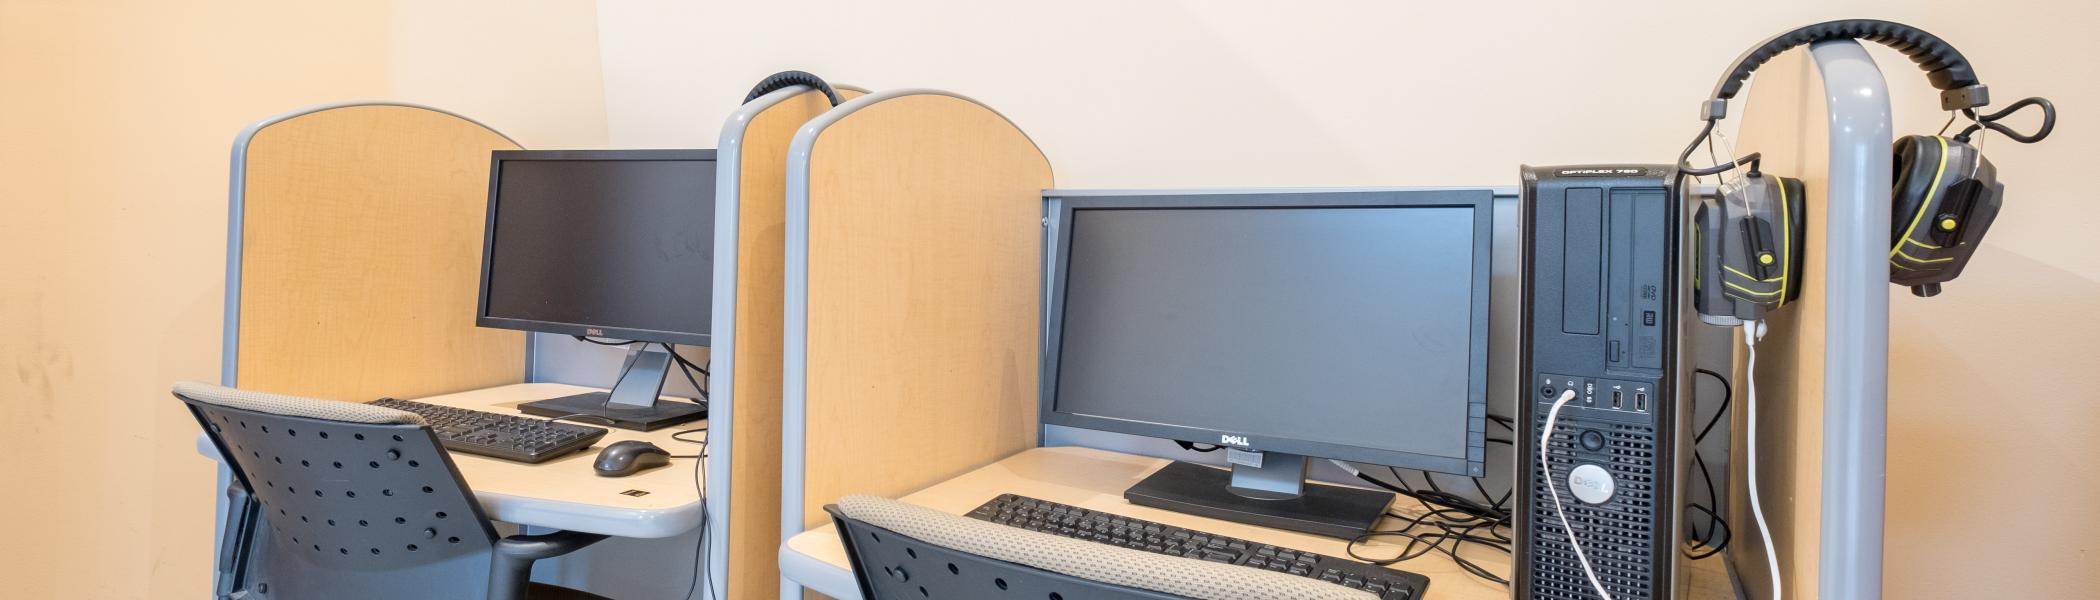 View of PC workstations with noise cancelling headphones.